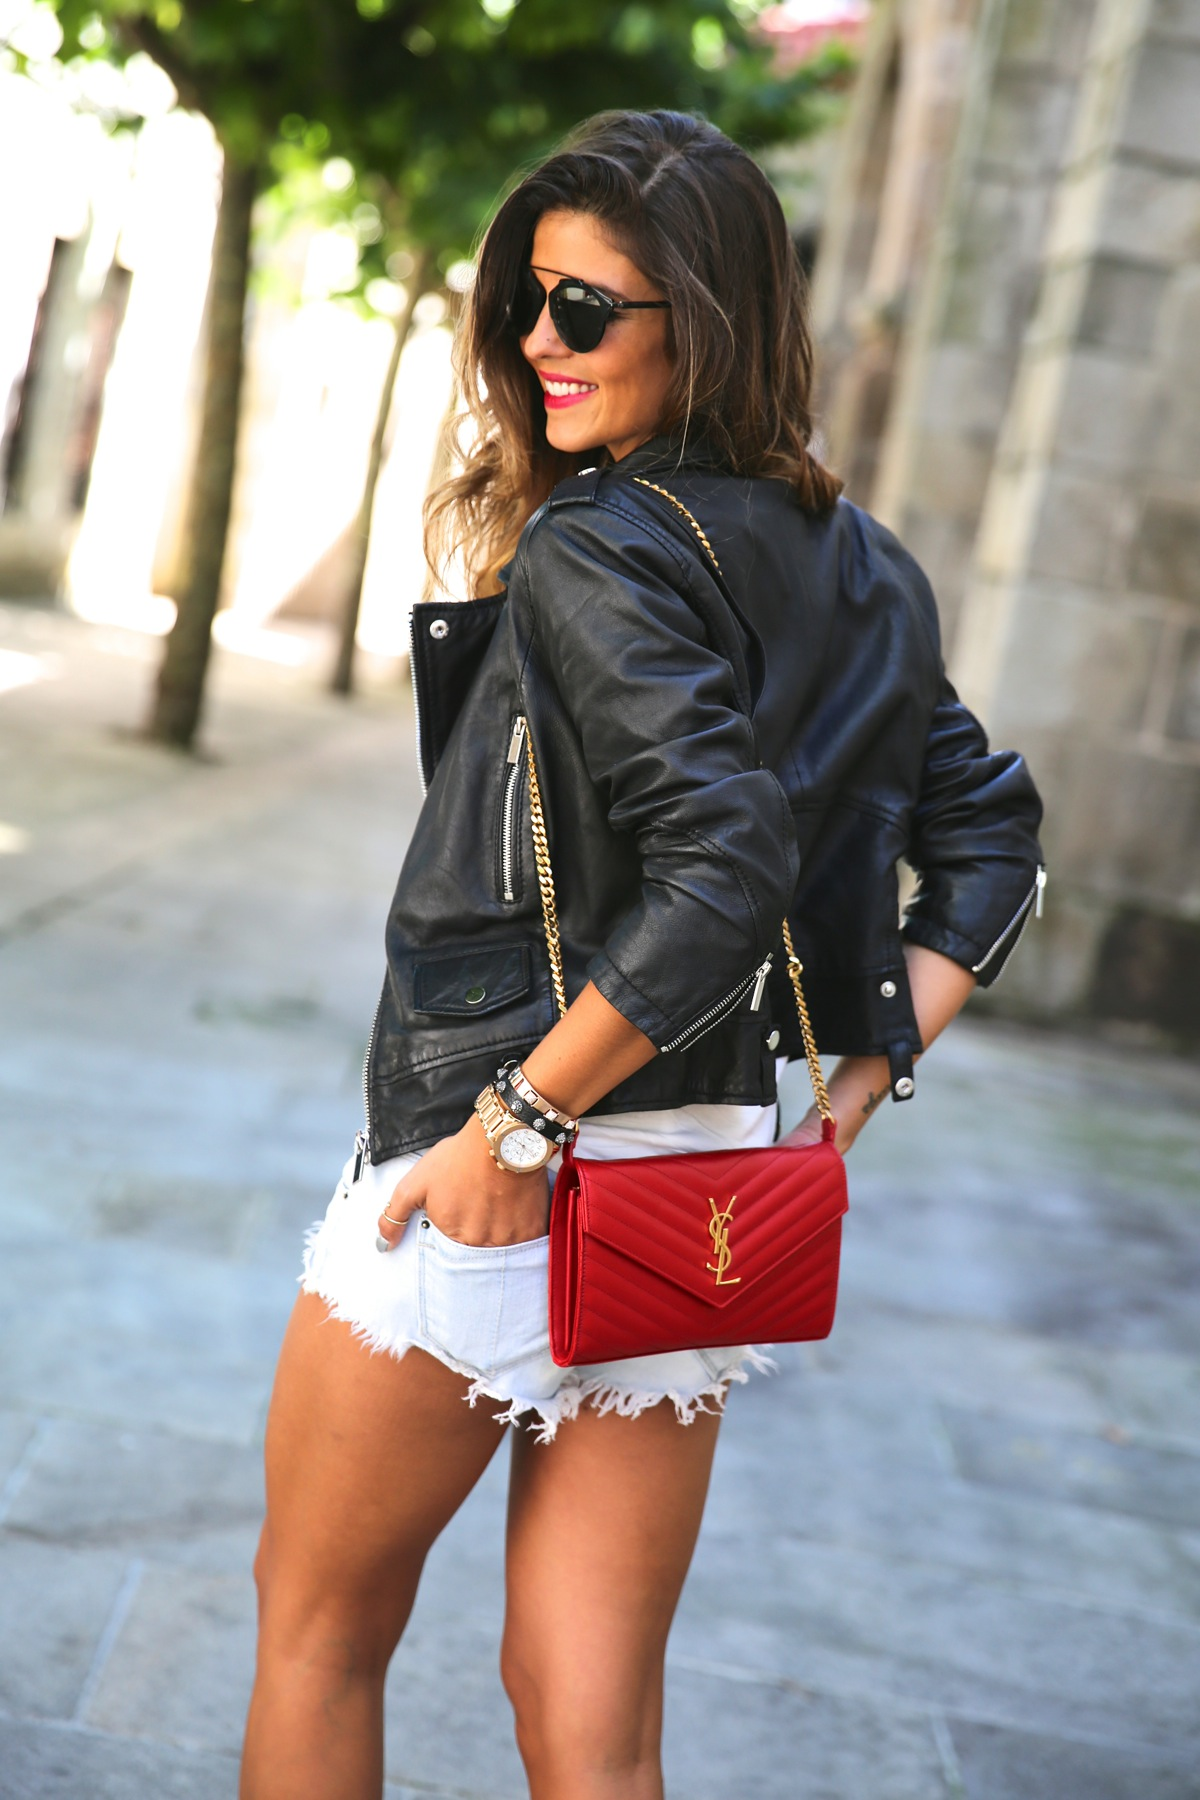 trendy_taste-look-outfit-street_style-ootd-leo_print-estampado_leopardo-blog-blogger-fashion_spain-moda_españa-shorts_vaqueros-denim_shorts-leather_jacket-chaqueta_cuero-chupa-ysl-bolso_saint_laurent-4